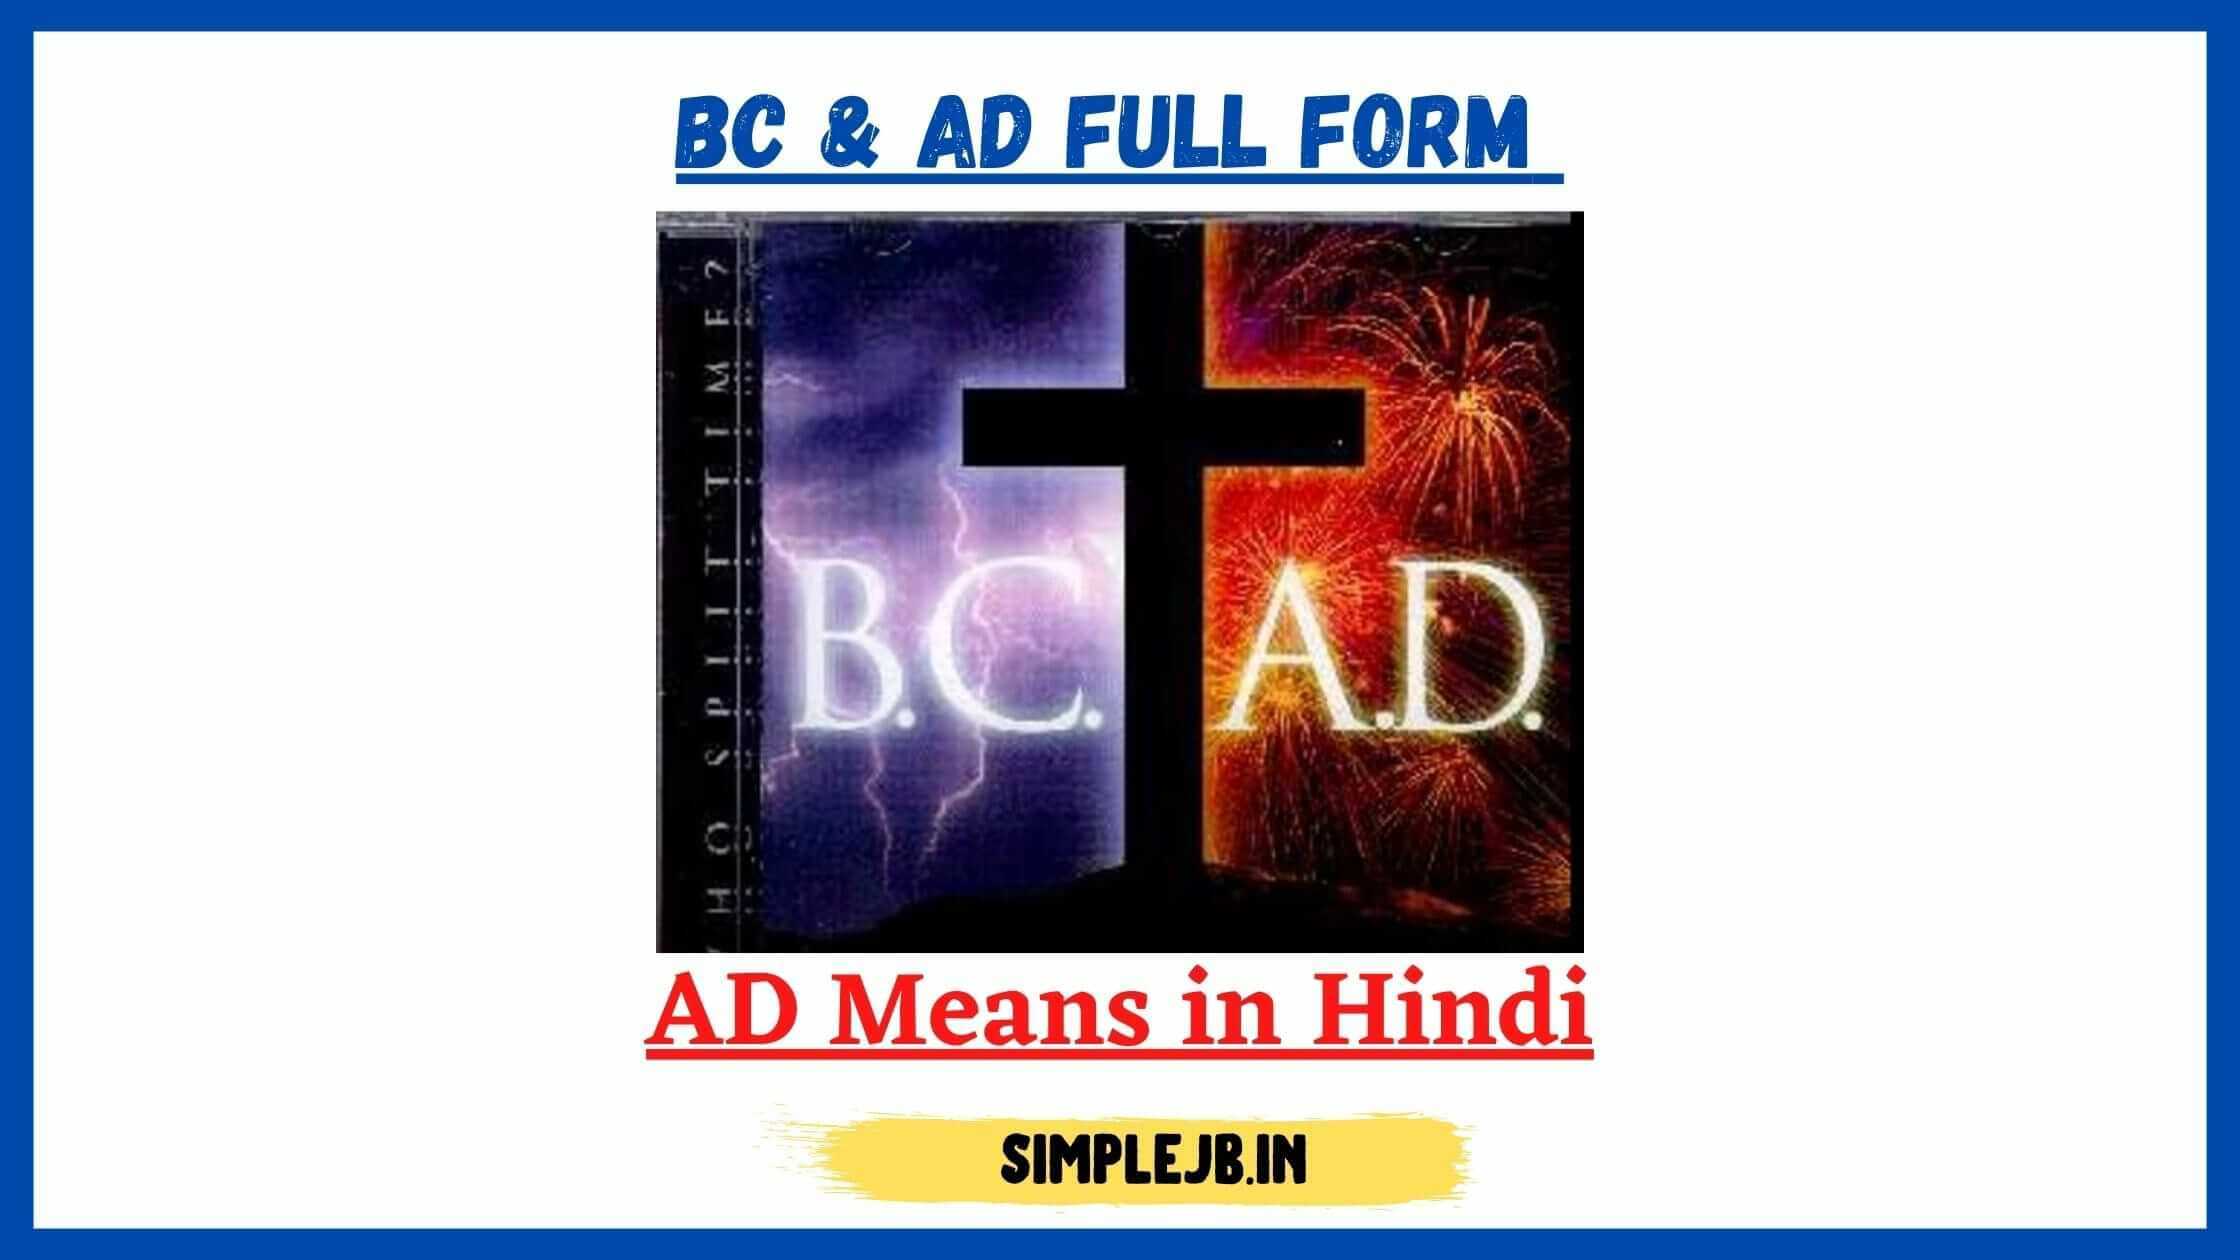 BC-ad-meaning